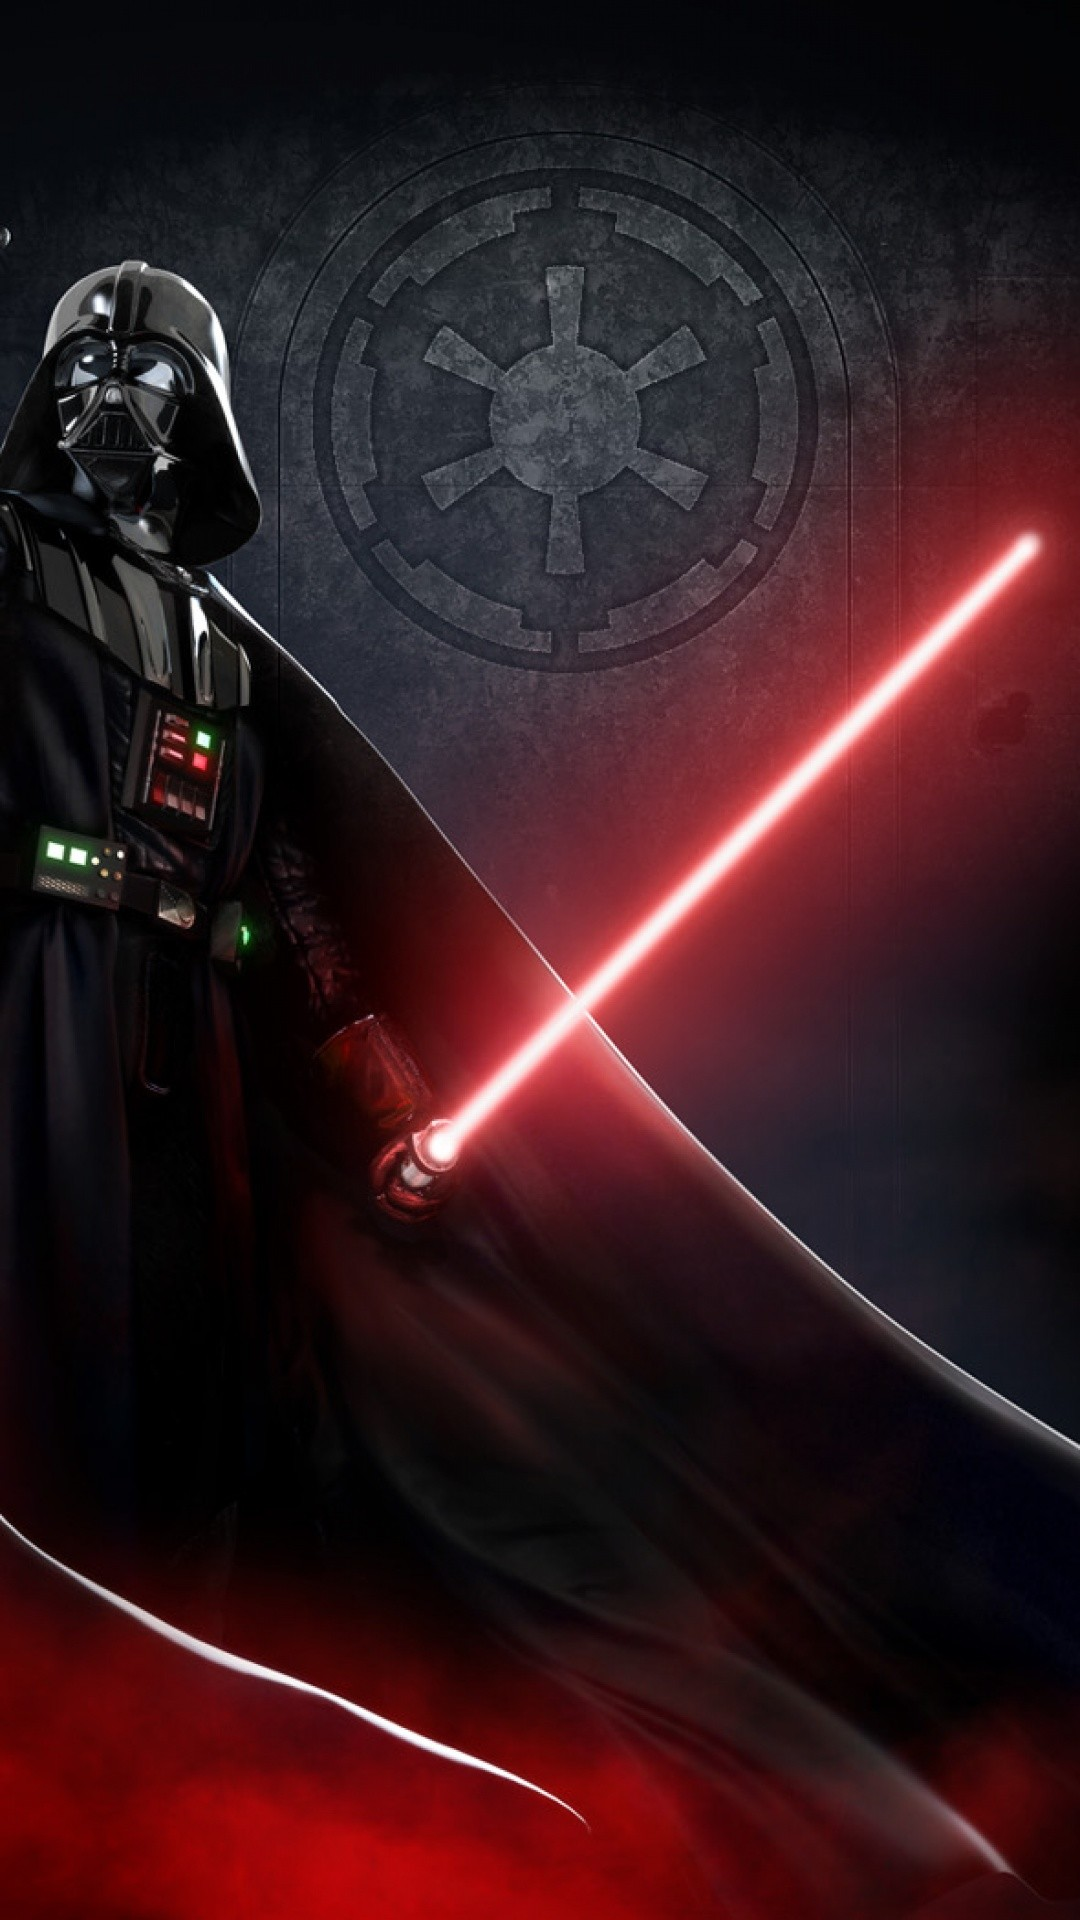 1080x1920 star wars wallpaper for android 1080x1920 star wars darth vader